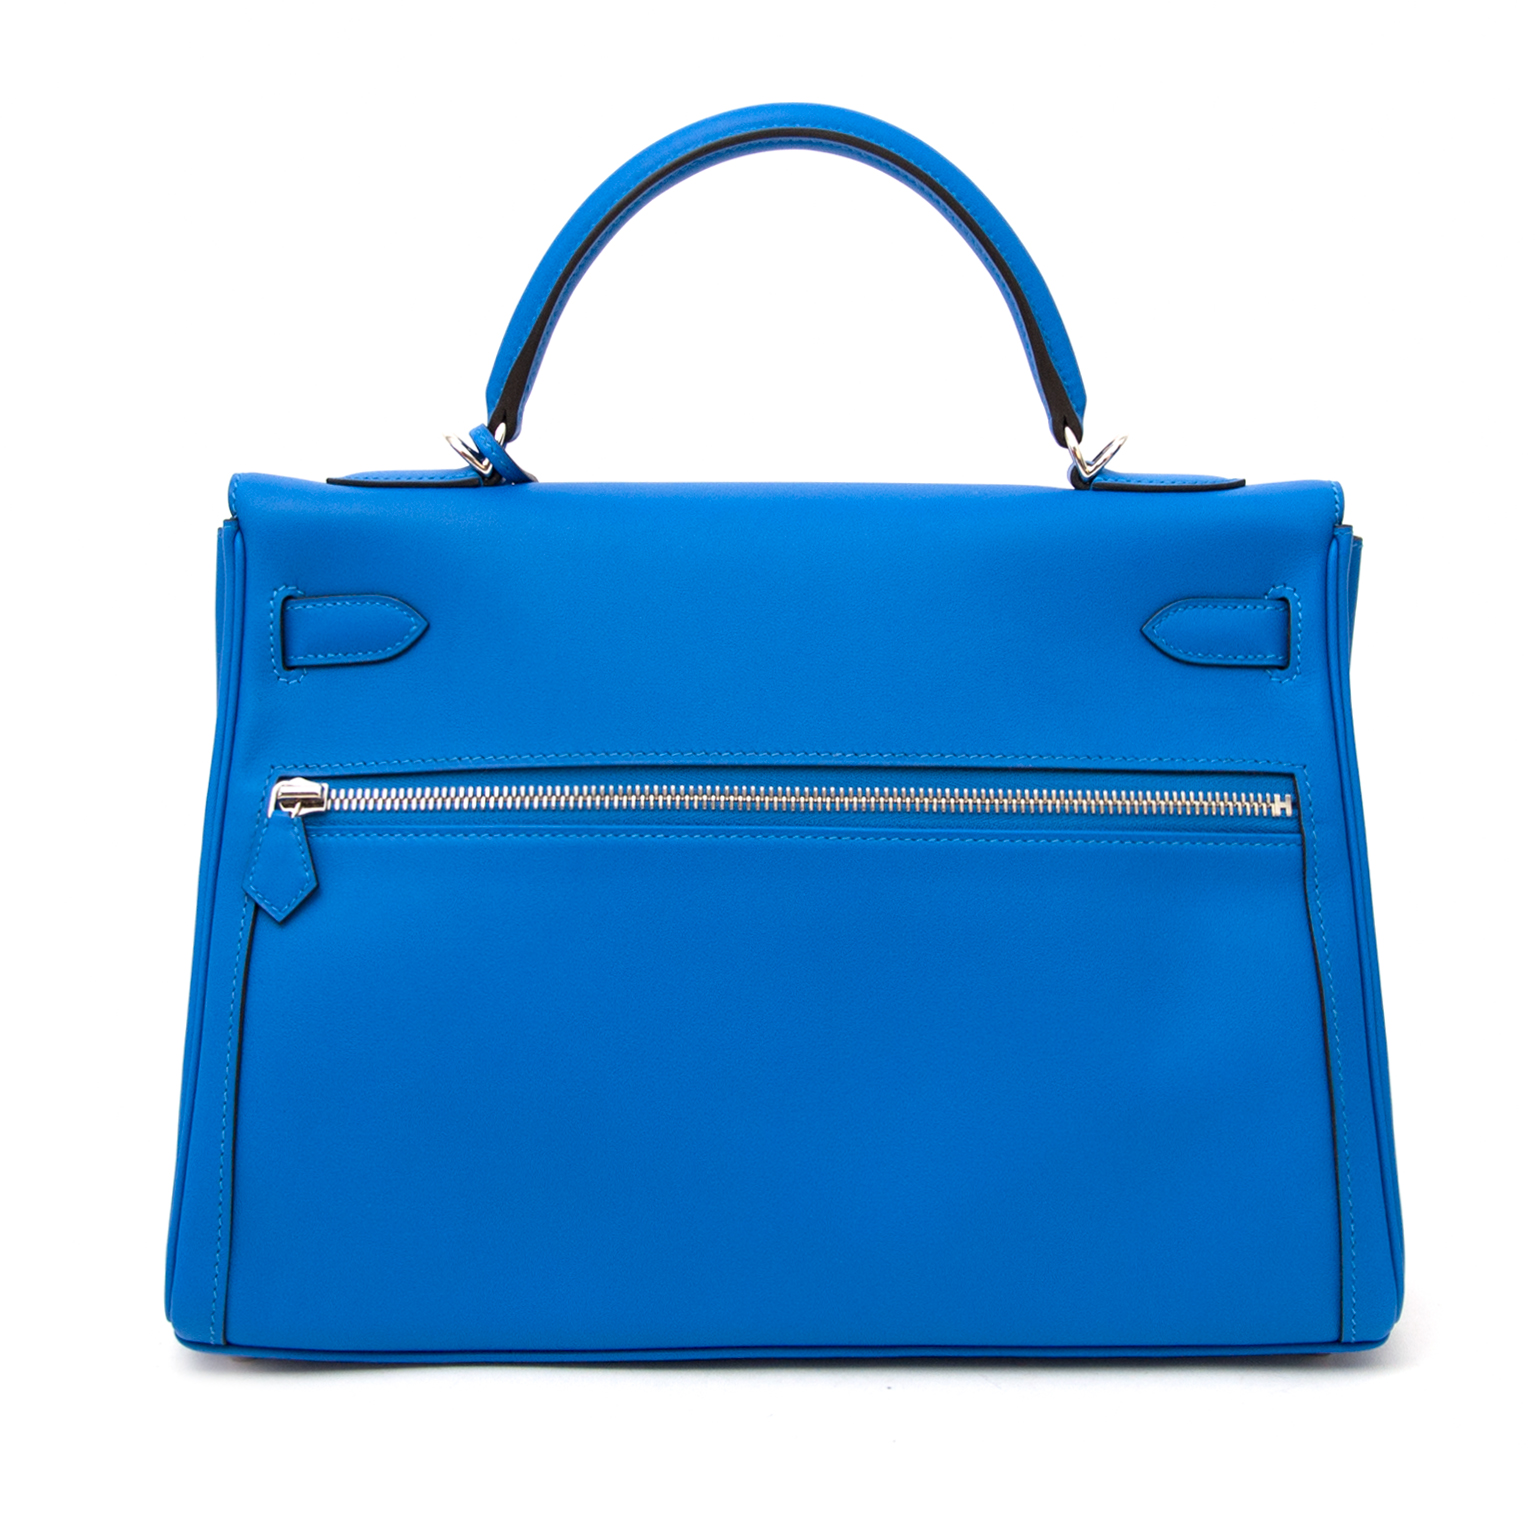 Are you looking for an authentic Hermes Kelly Lakis 32? Shop safe and secur at Labellov